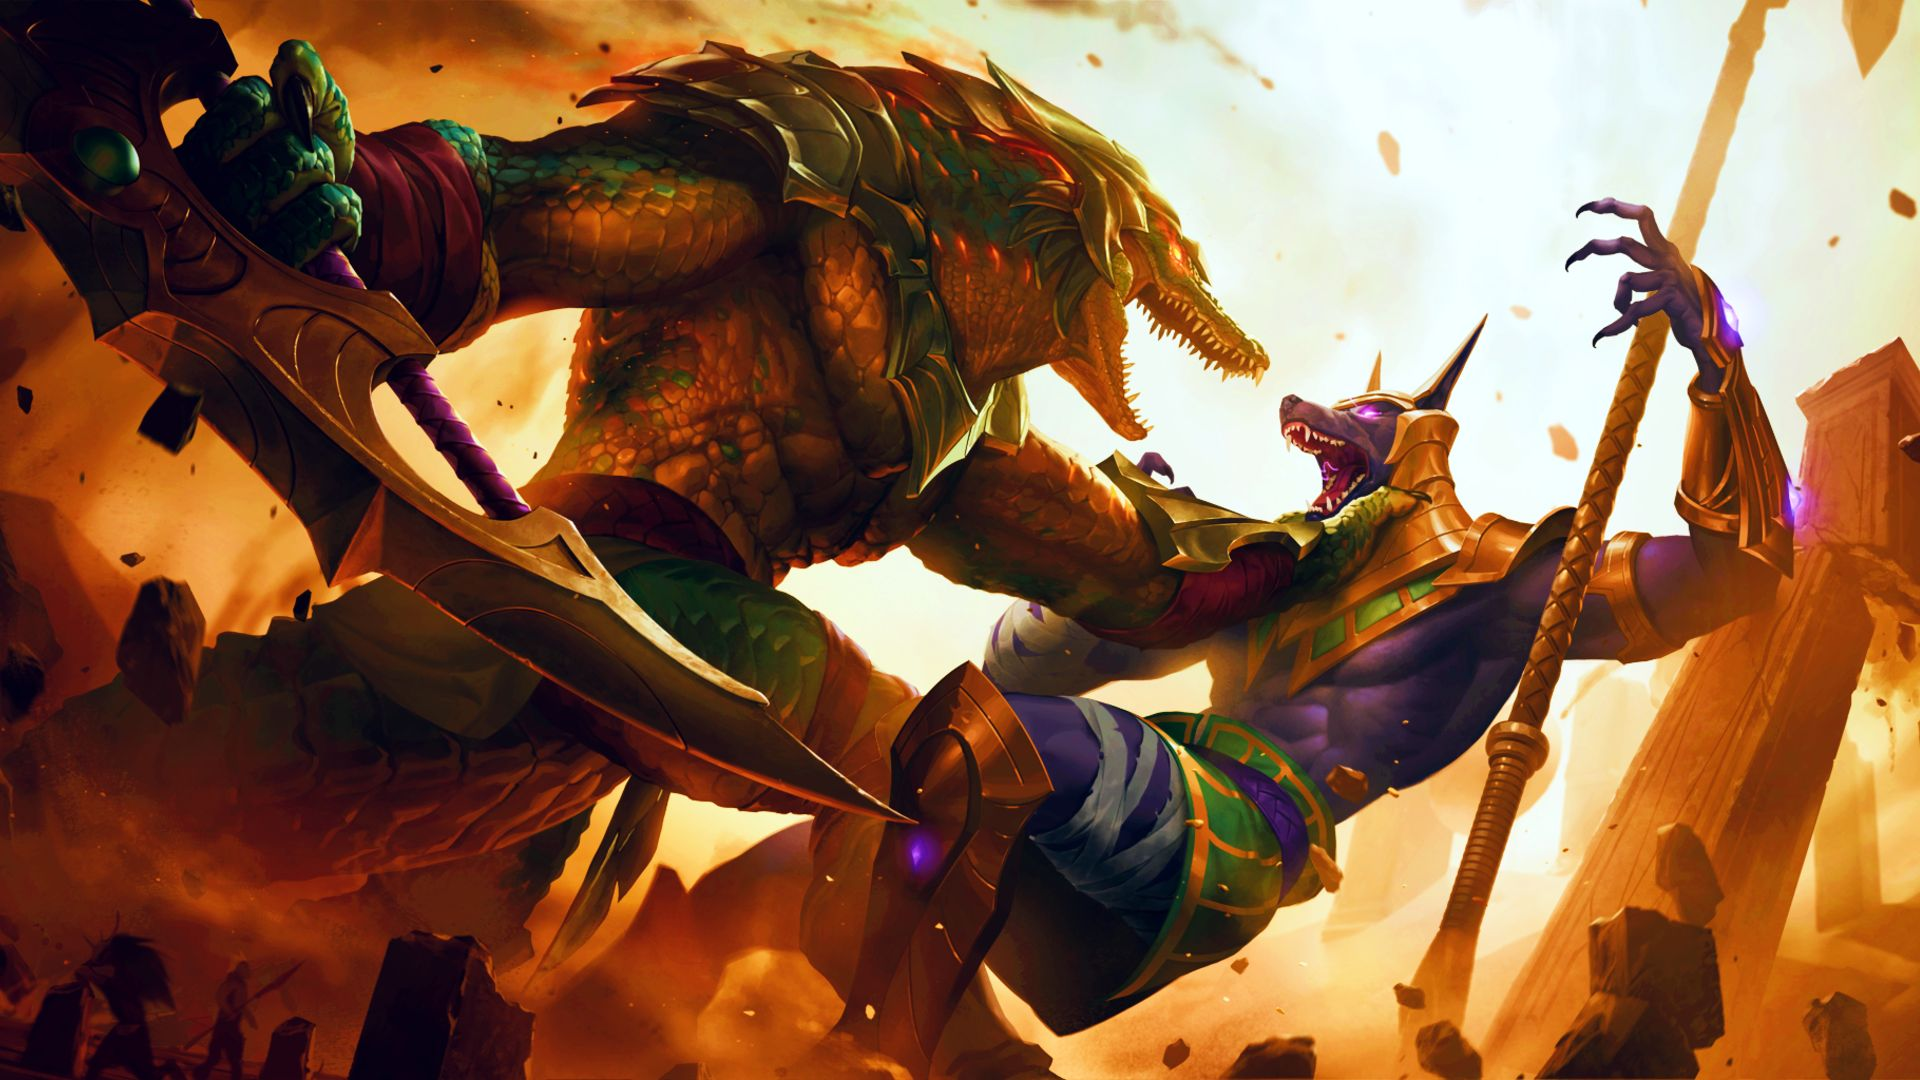 Empires of the Ascended adds Legends of Runeterra's best cards yet